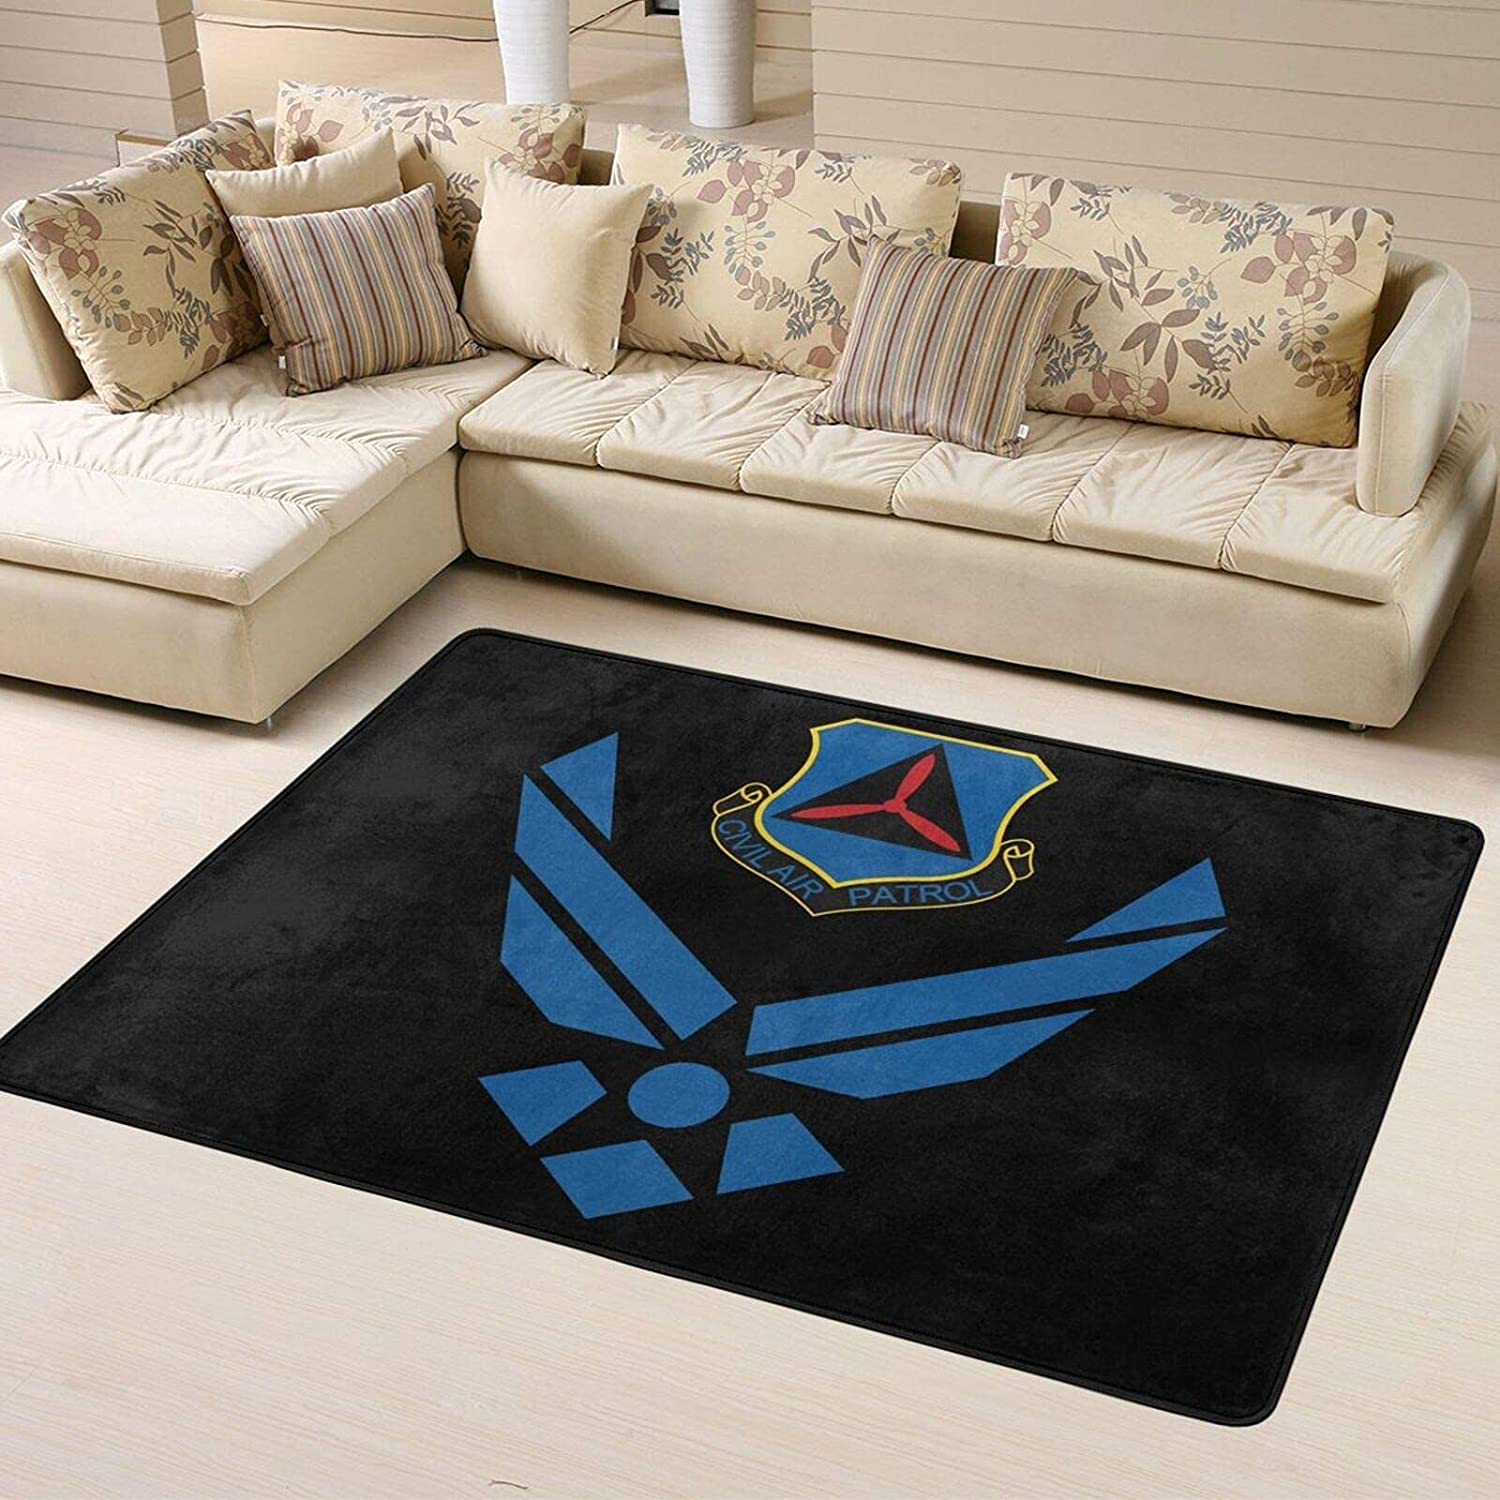 Branded goods Civil Air Patrol U Super Discount mail order Soft Decoration Personalized Rugs Home